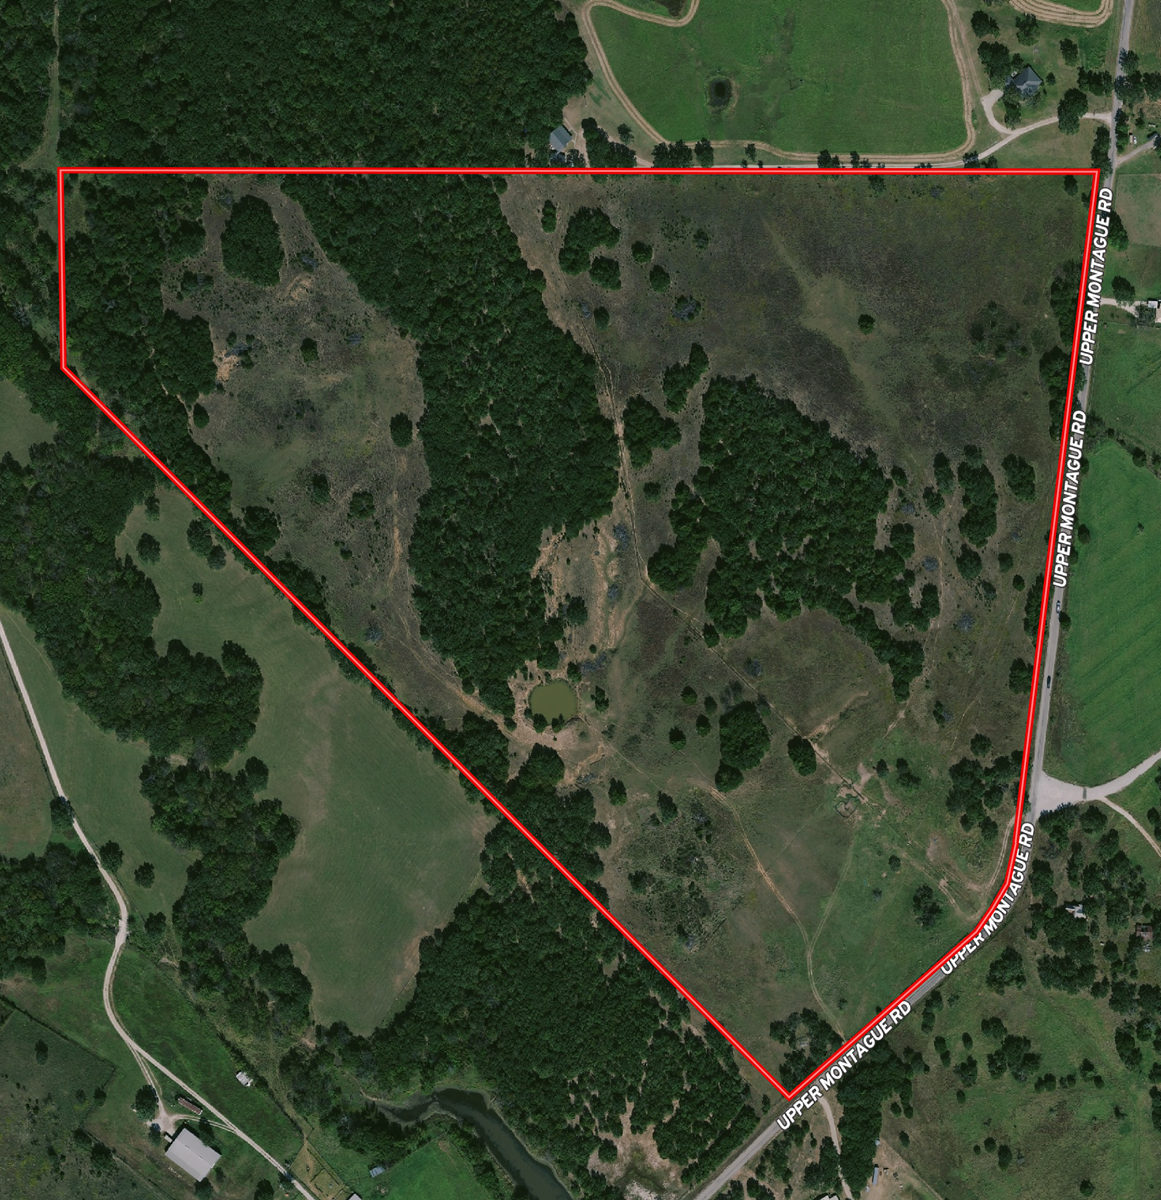 LAND FOR SALE MONTAGUE COUNTY TEXAS PROPERTY RANCH